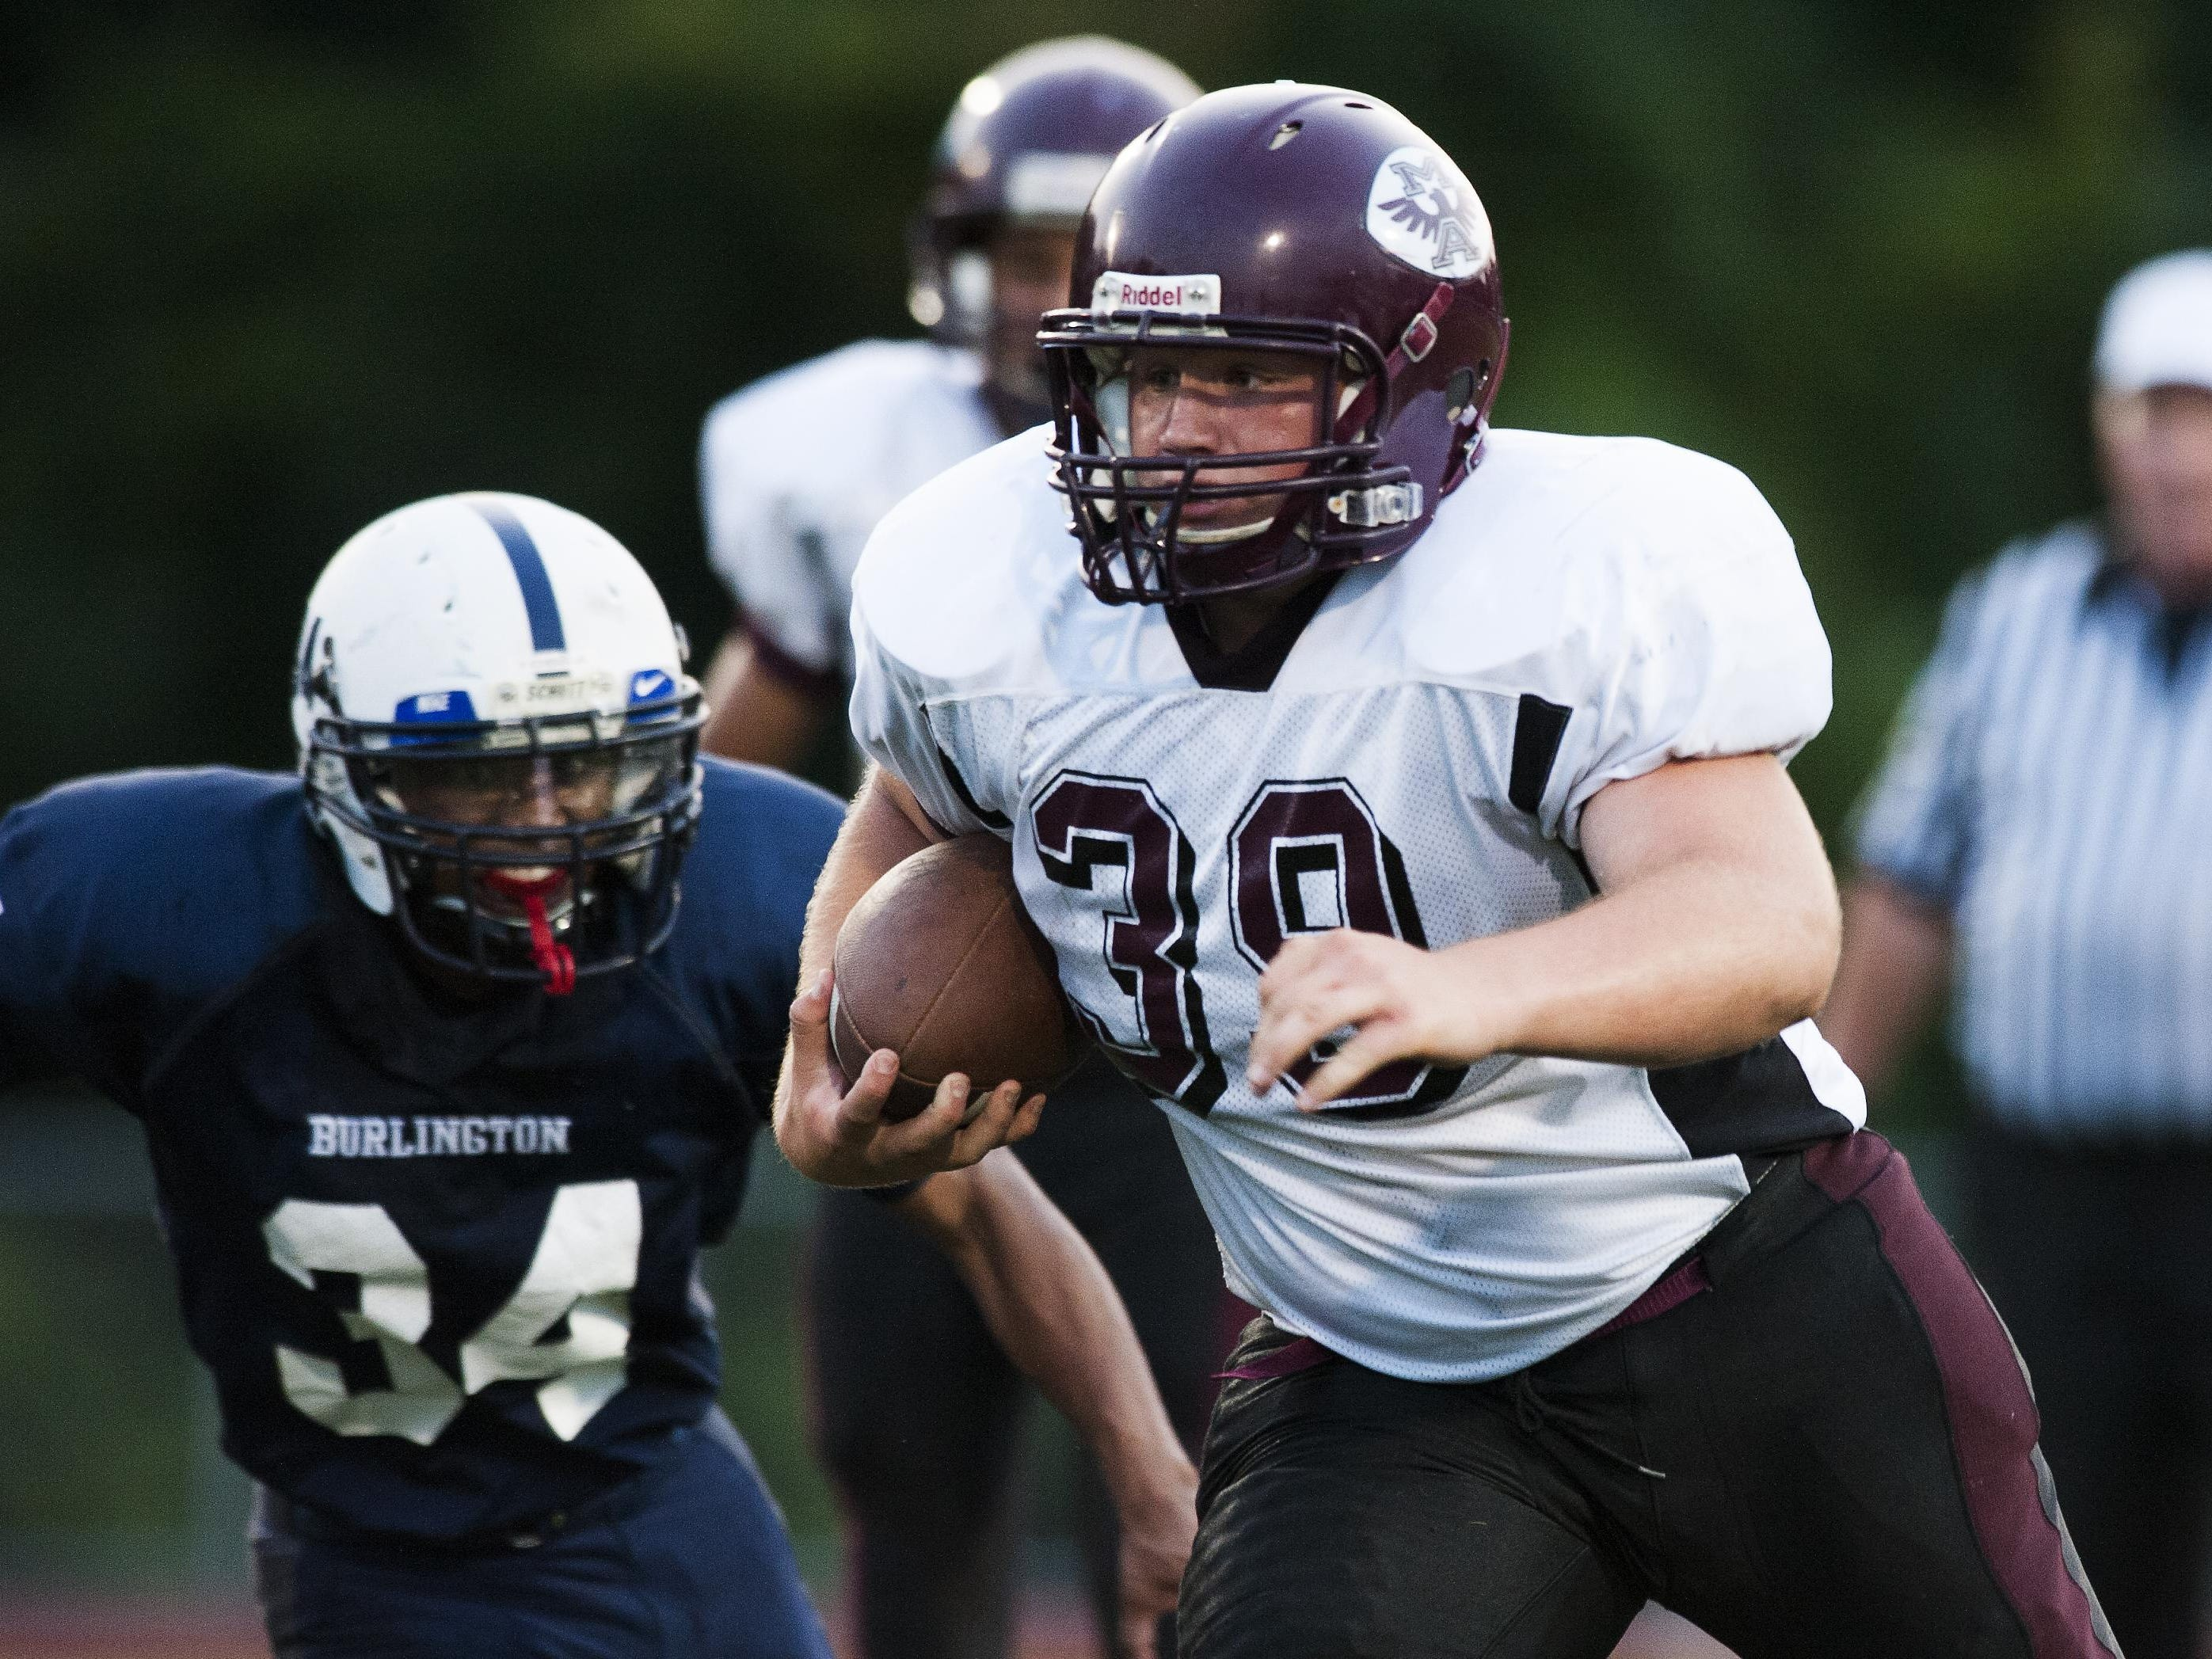 Mount Abraham's Casey Kimball (39) runs with the ball during Friday night's football game against Burlington at Buck Hard Field. Kimball led the Eagles with 85 yards rushing on 11 carries.